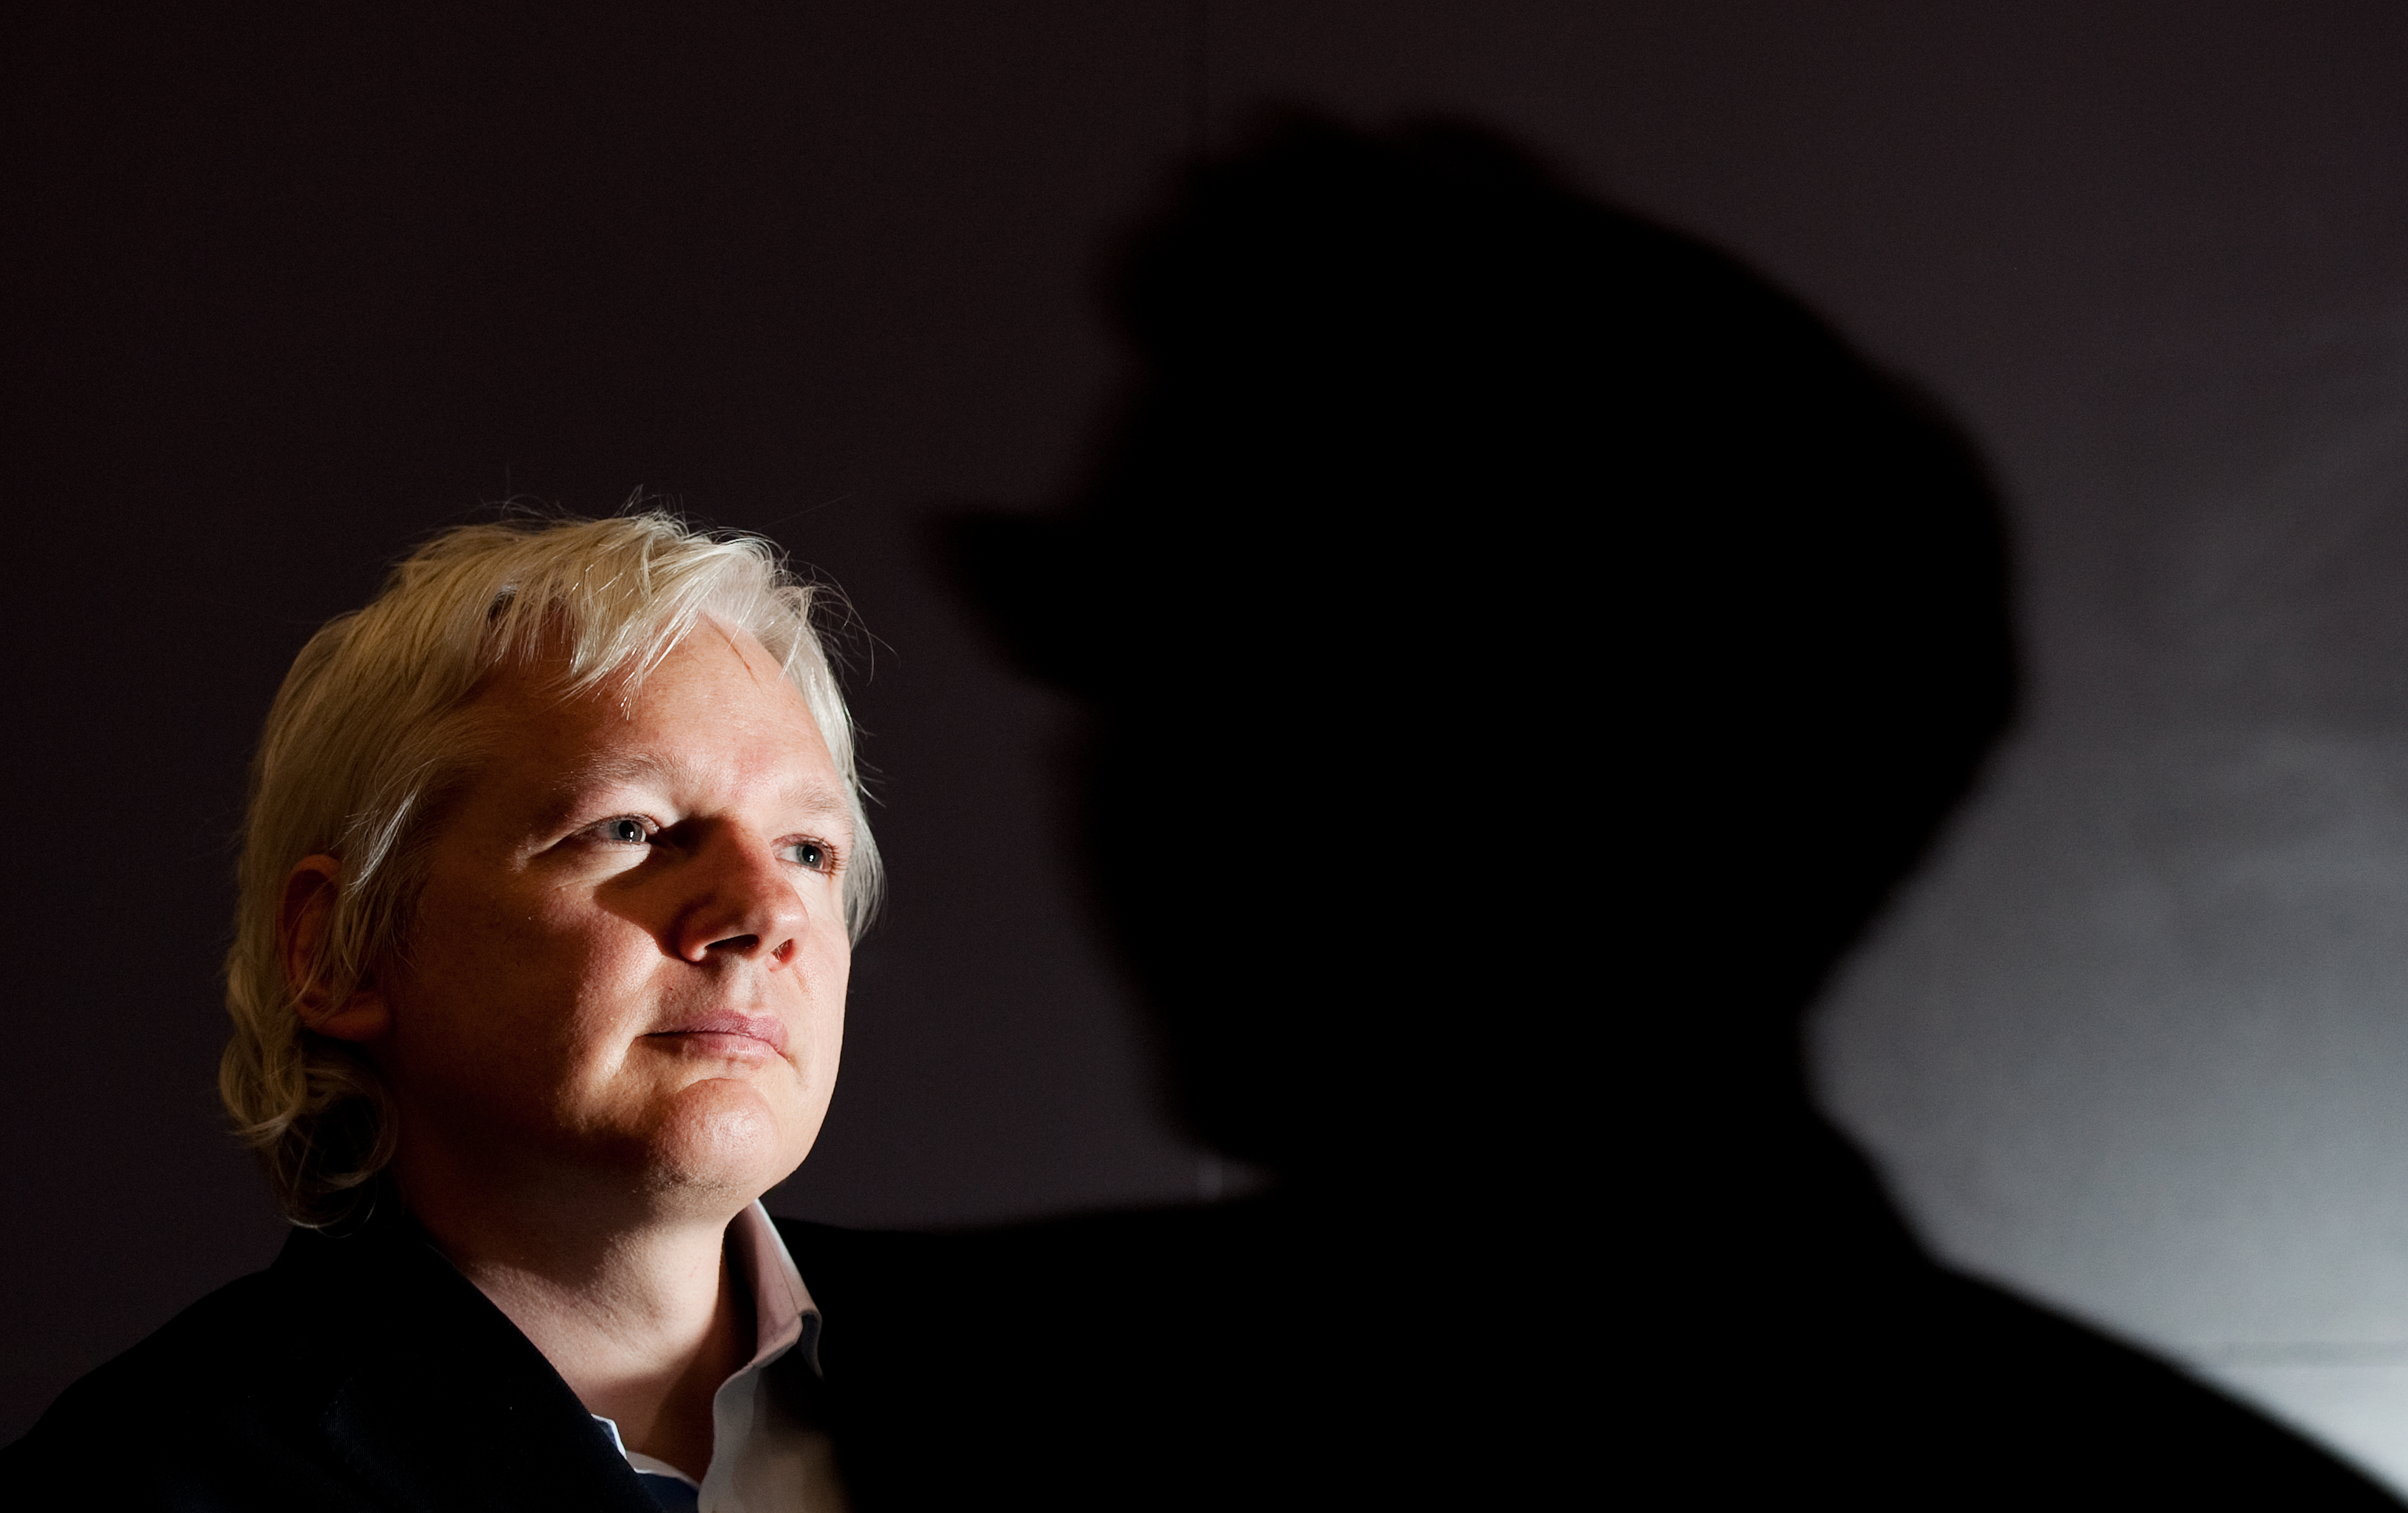 Julian Assange: The Rolling Stone Interview